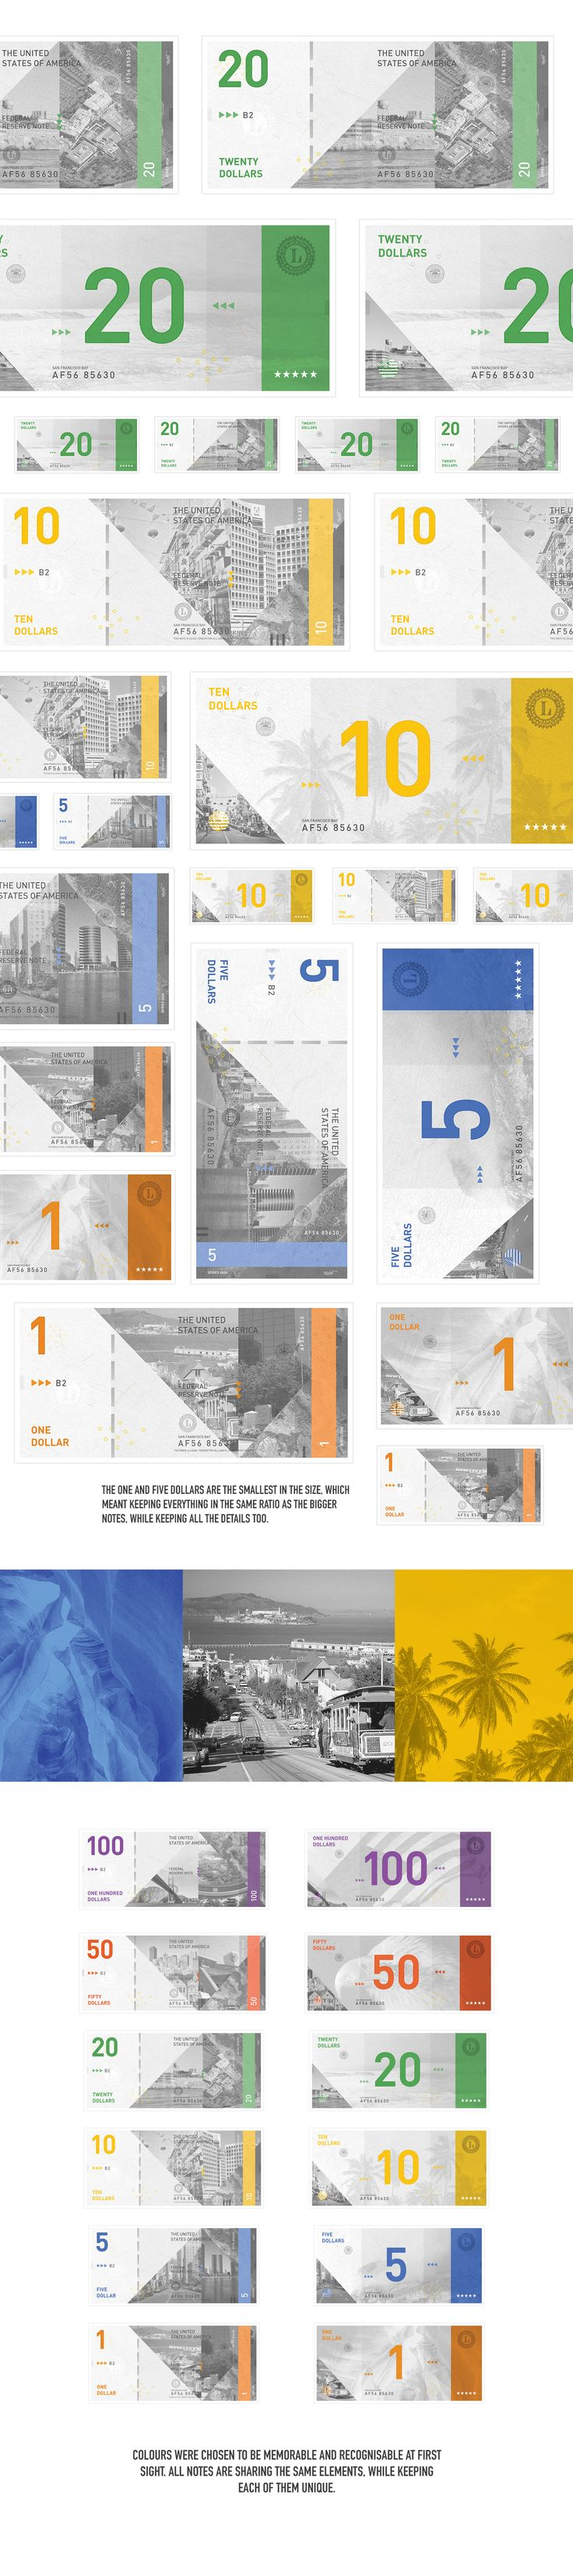 US Dollar Redesign Project on Behance